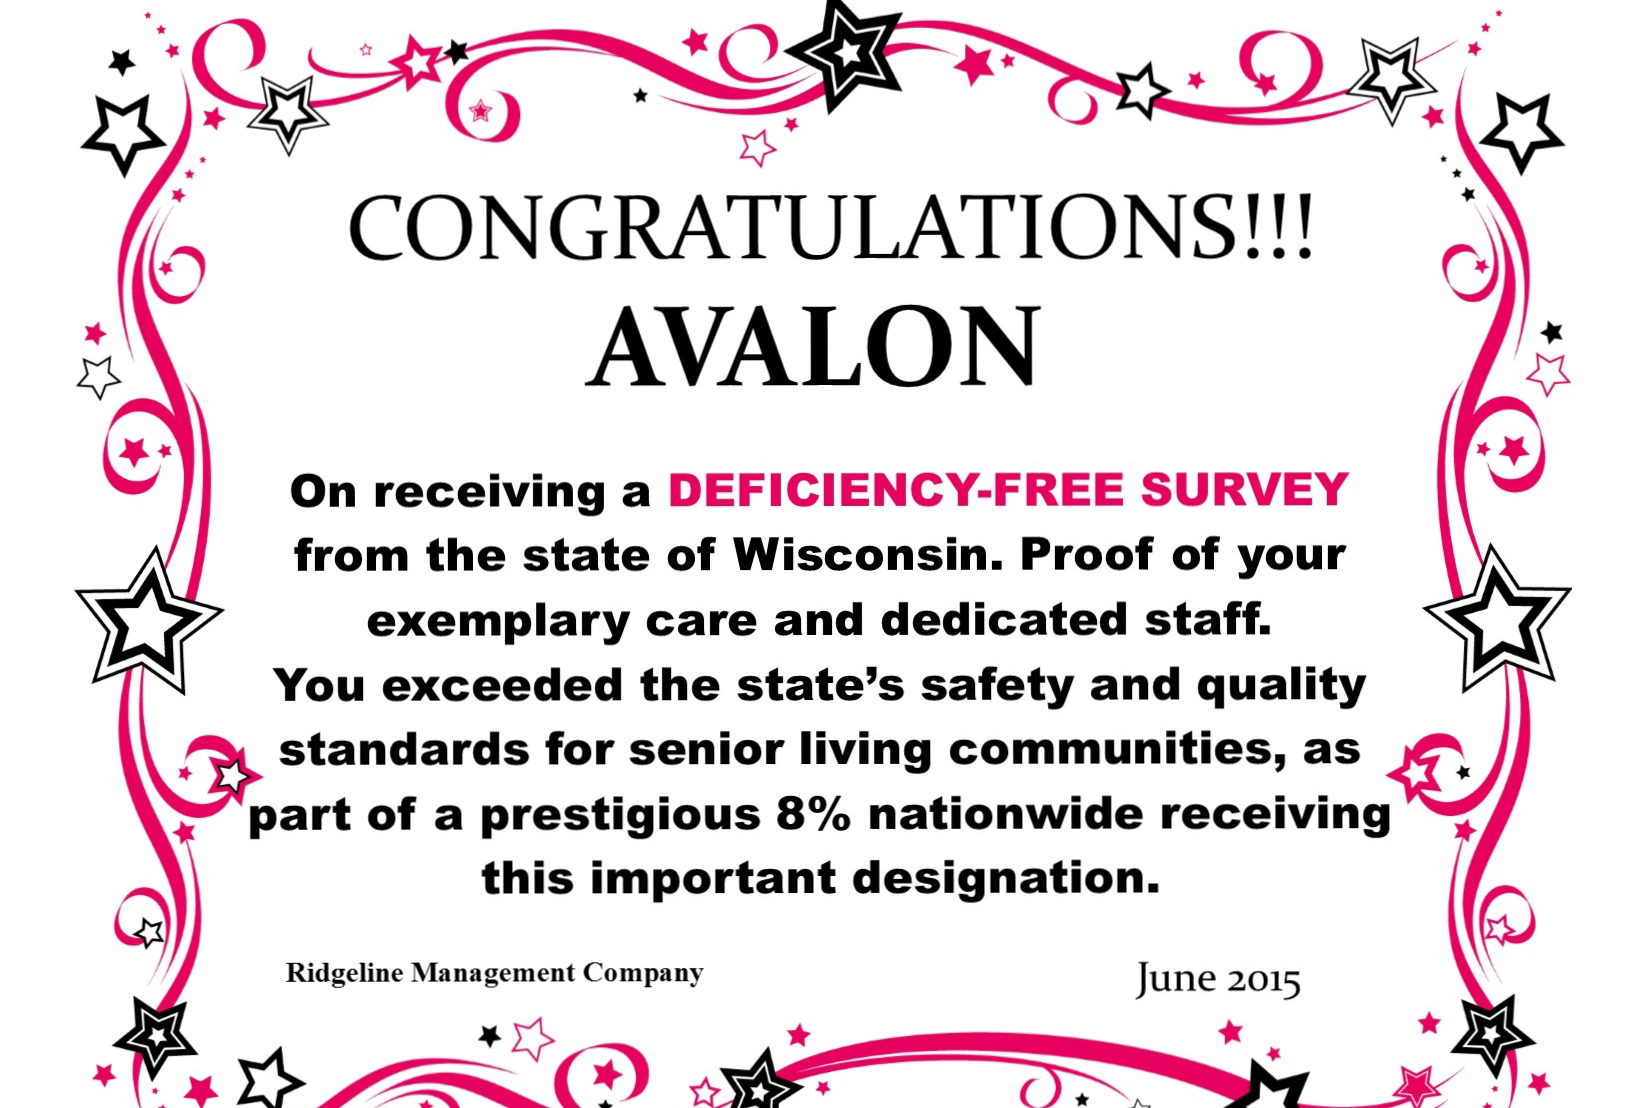 Congrats deficiency free banner website avalon (1)